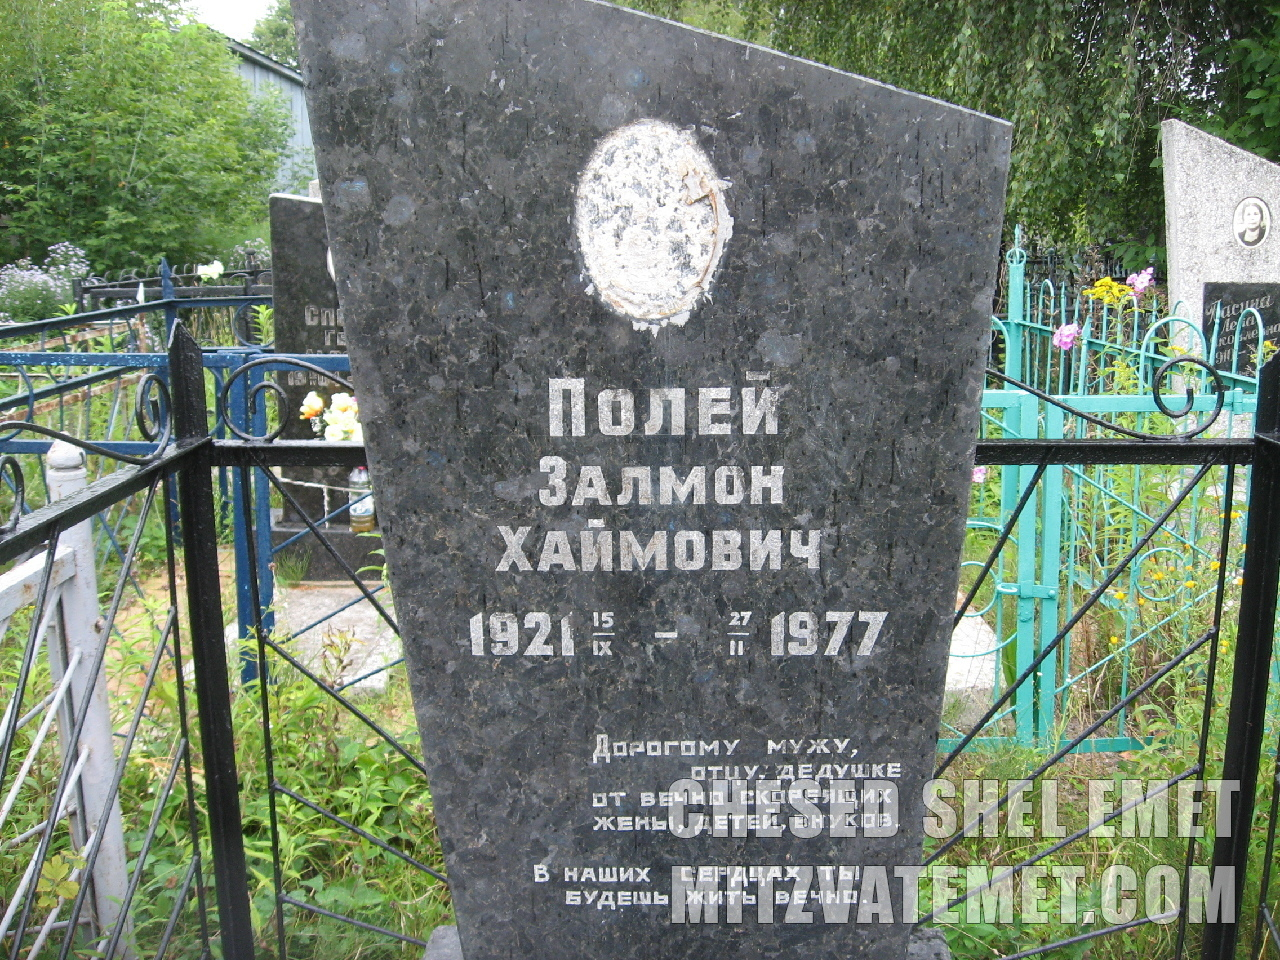 Poley Zalmon Khaimovich 1921-1977